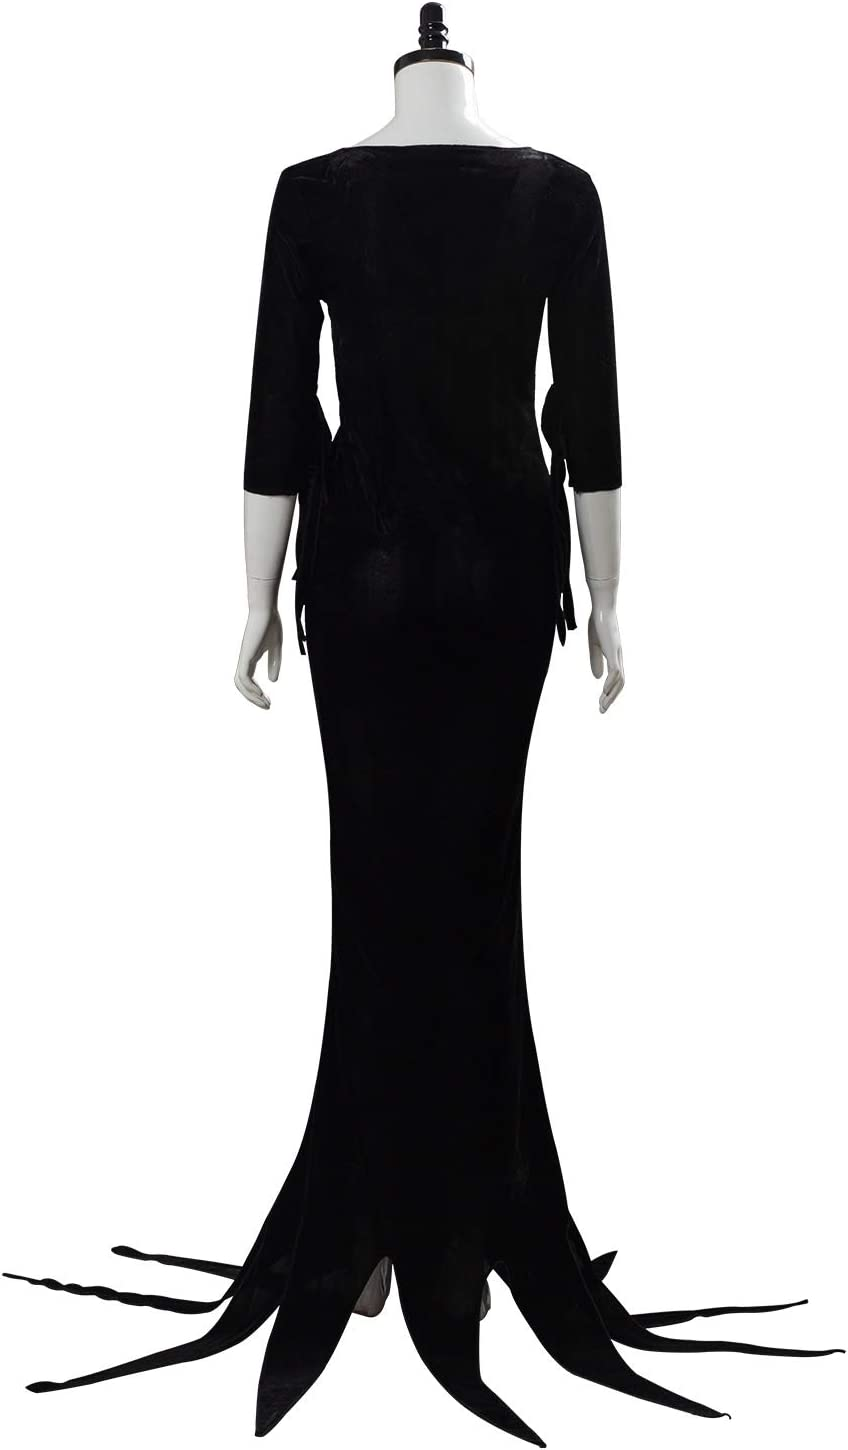 RedJade Morticia Addams The Addams Family Outfit Vestido Suit ...